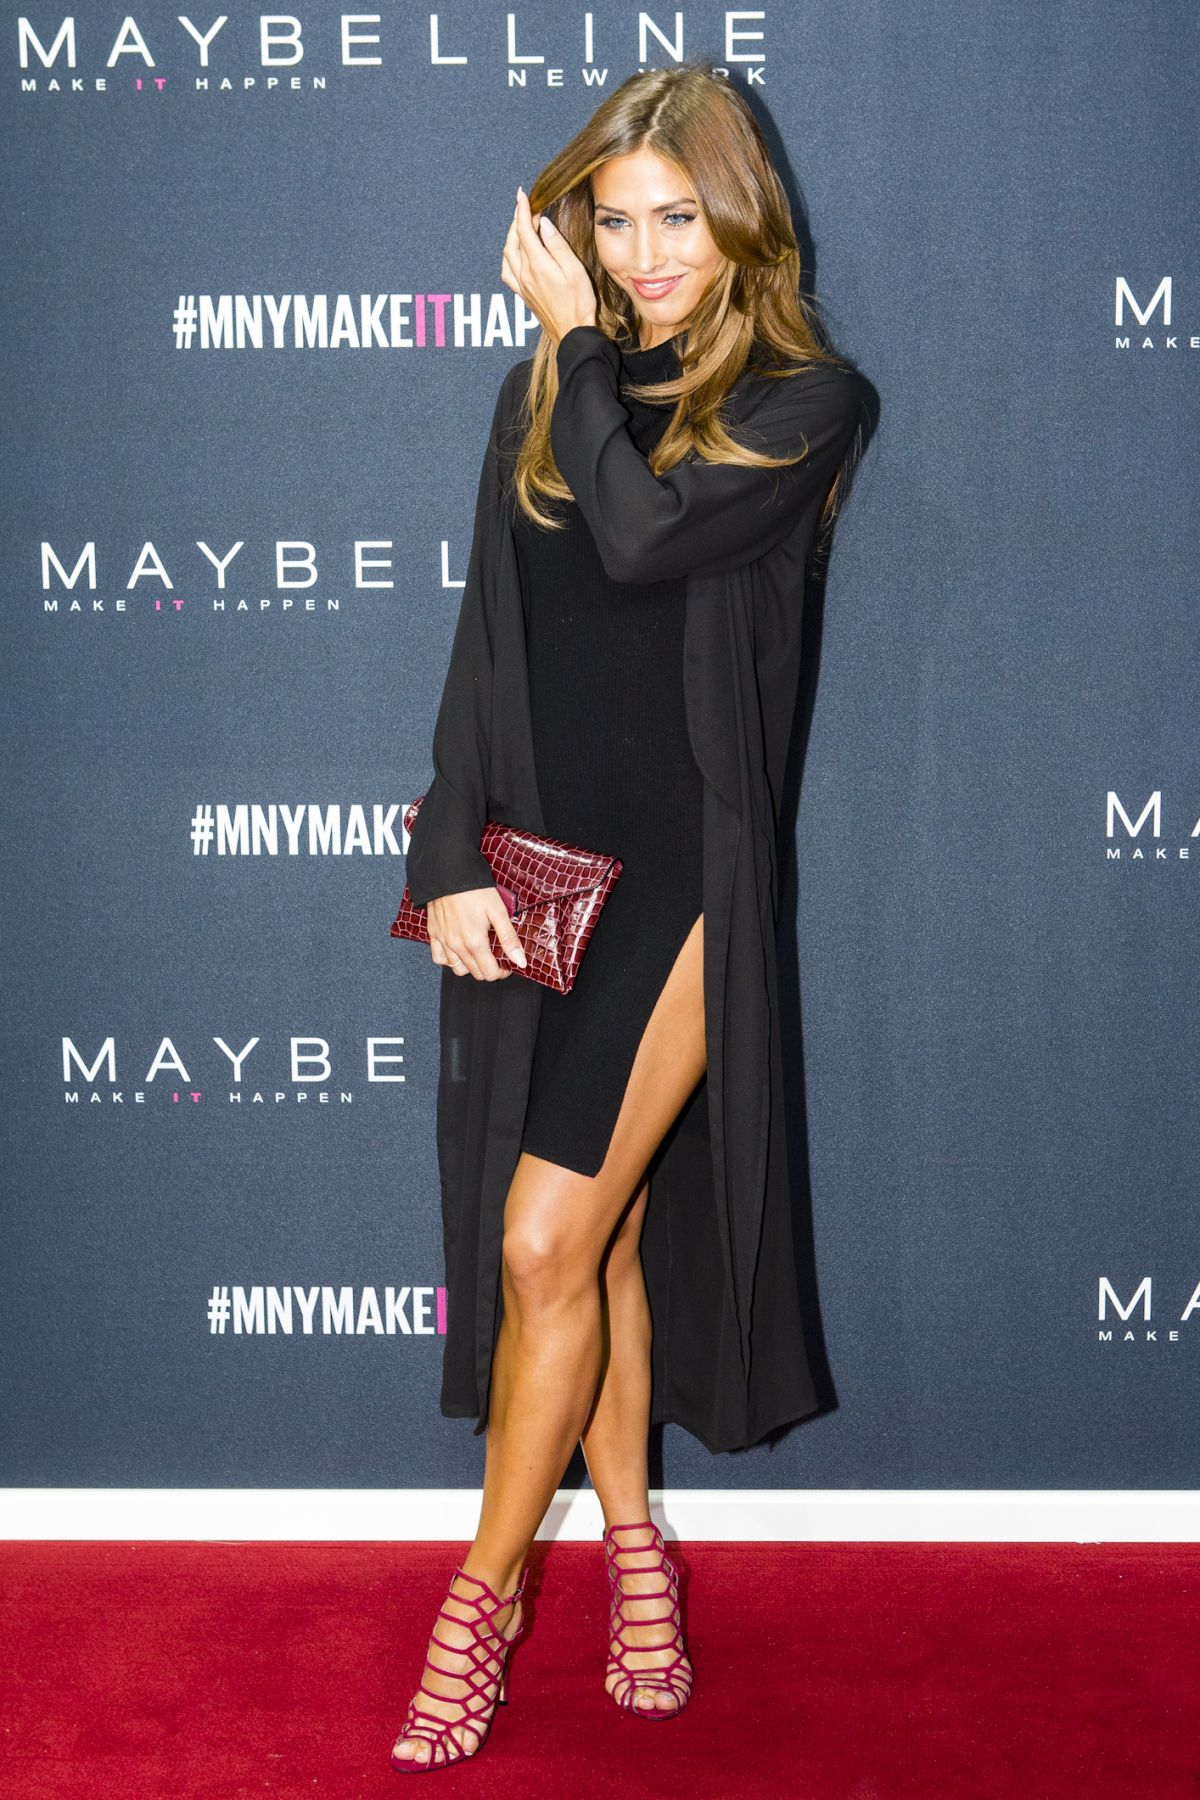 Pictures Ann-Kathrin Brommel nudes (17 photo), Topless, Paparazzi, Twitter, cameltoe 2017